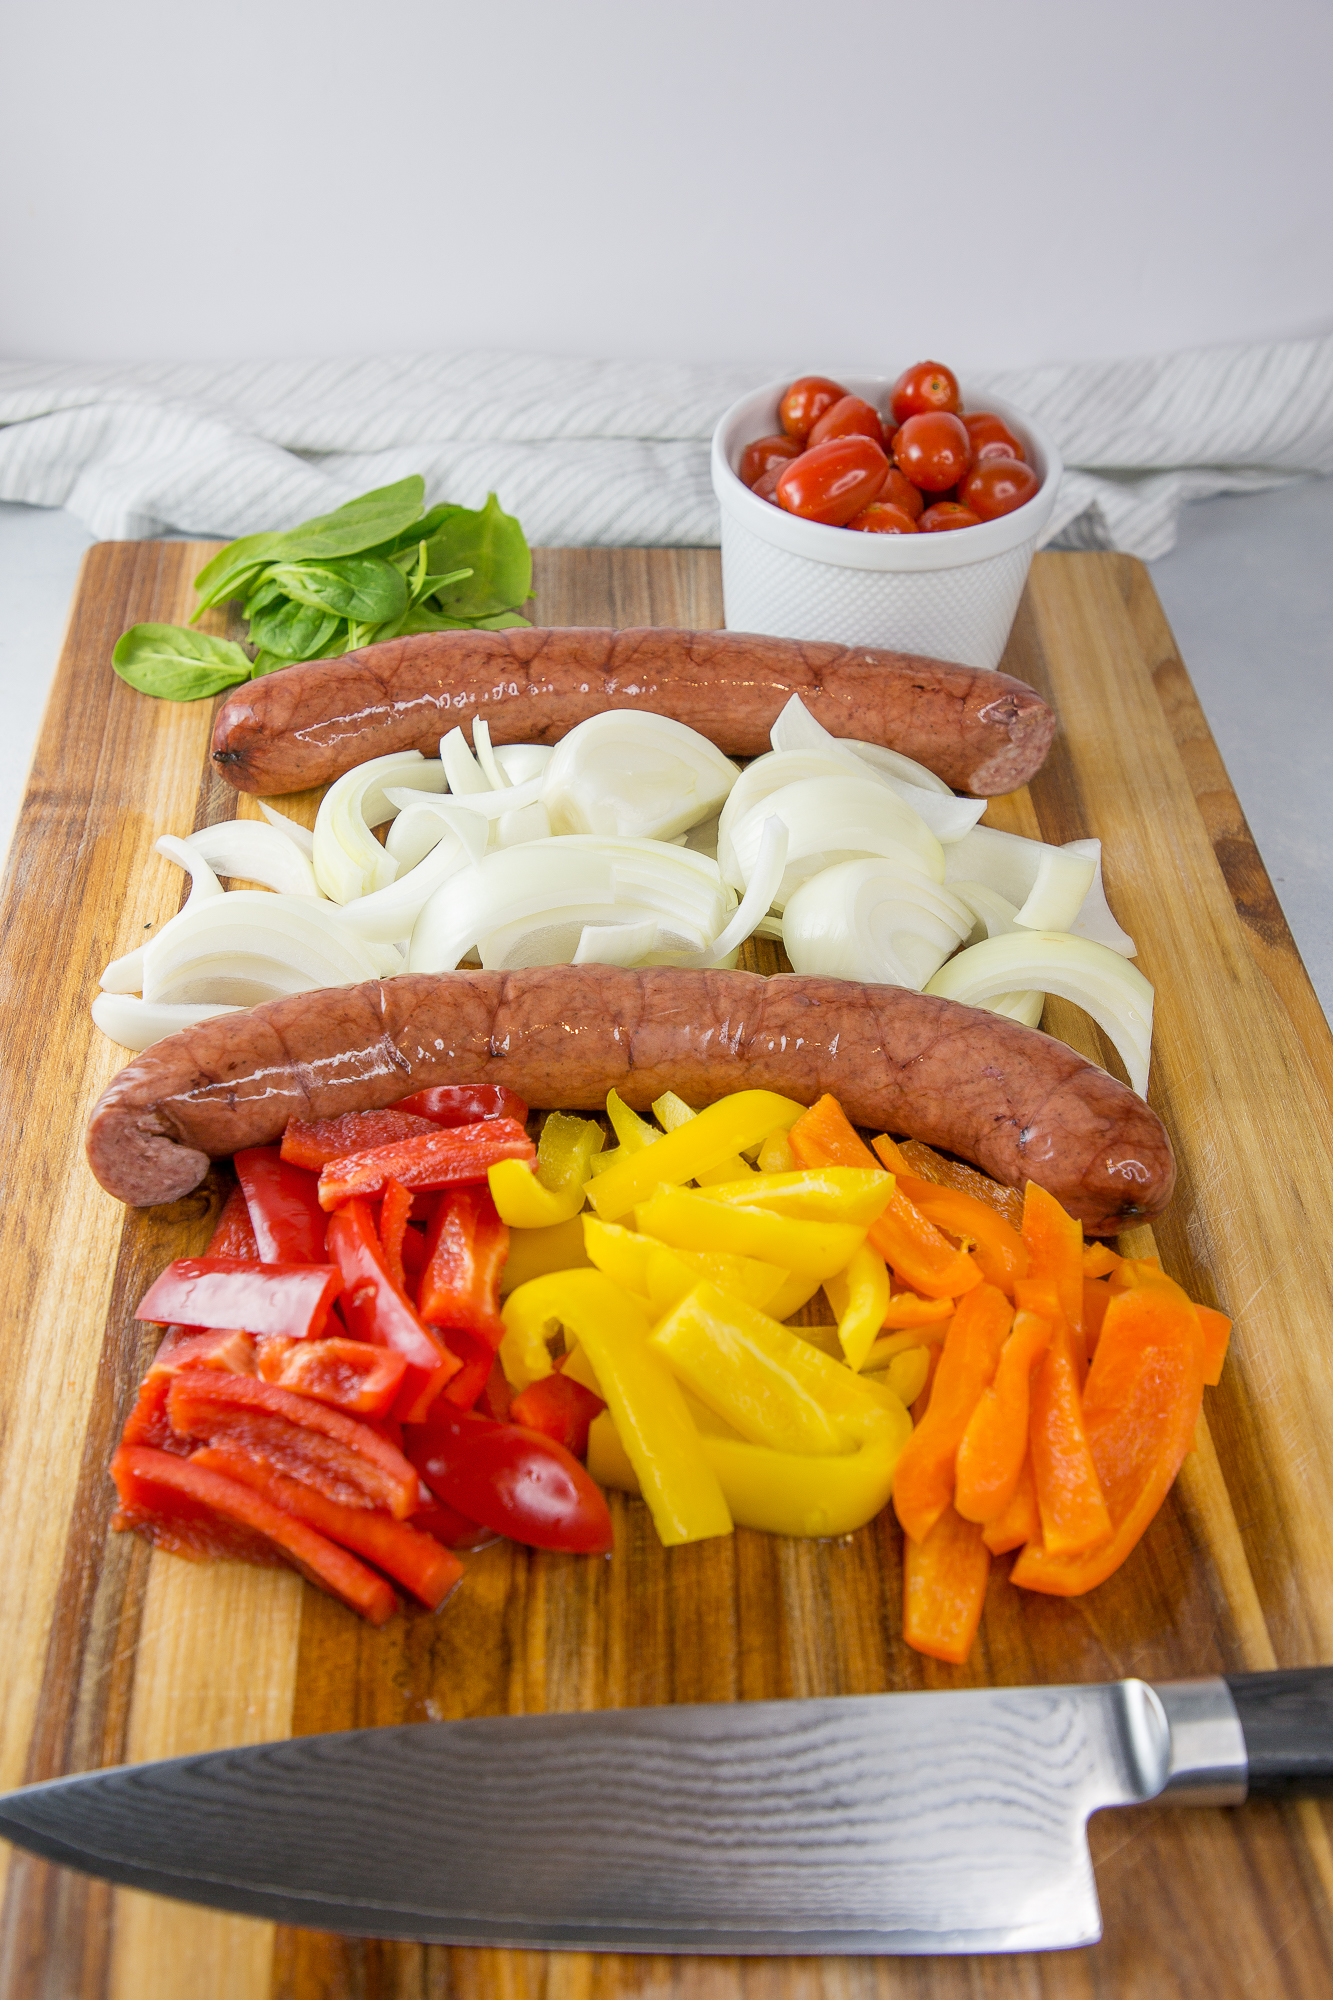 kielbasa and vegetables stir-fry ingredients